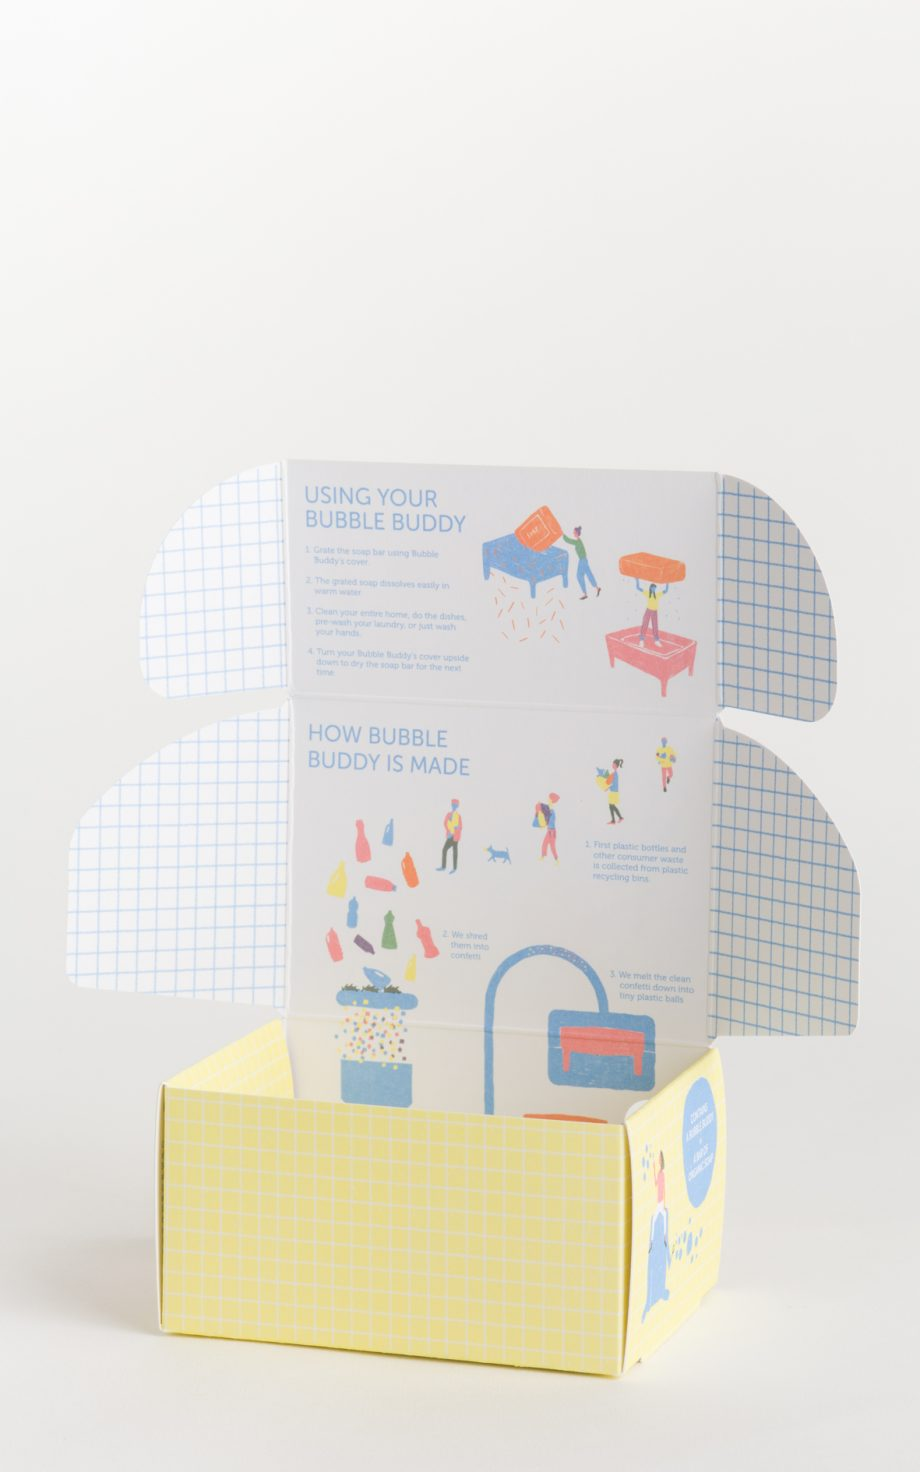 Bubble buddy packaging